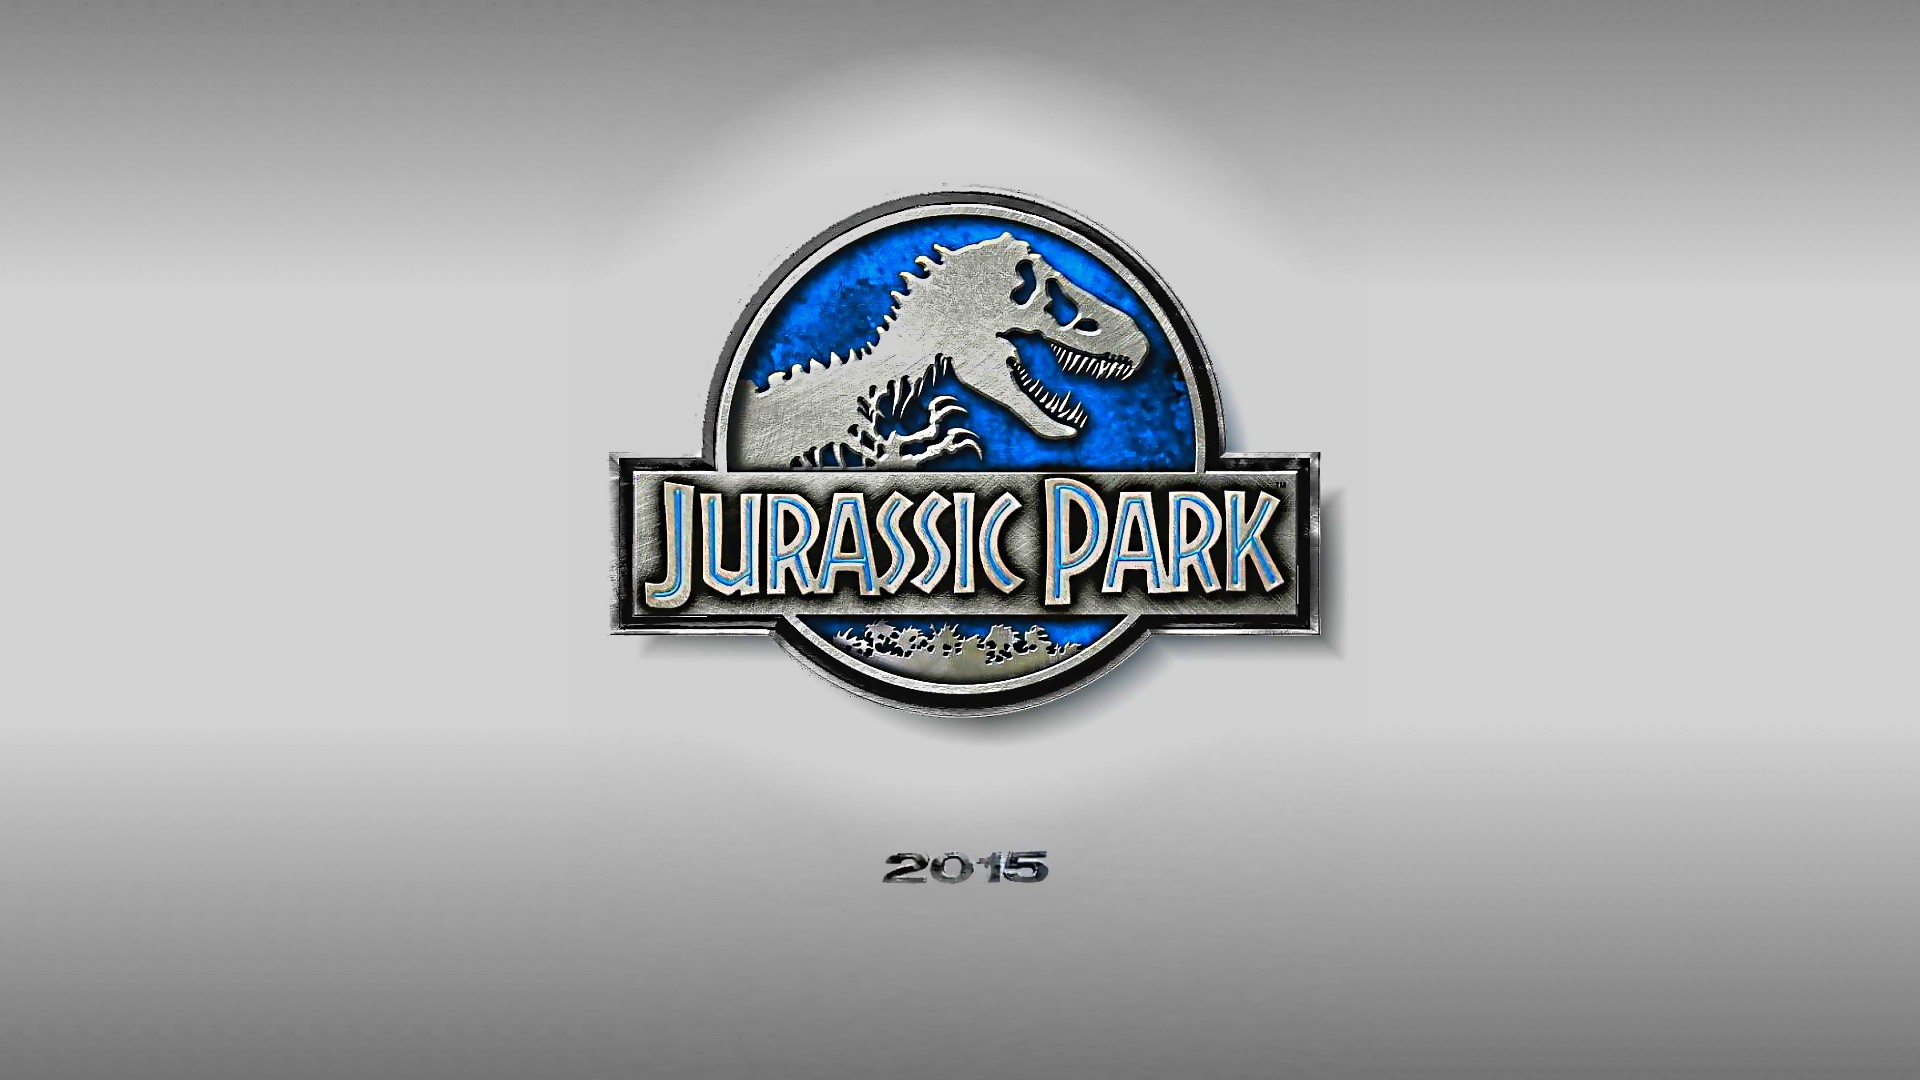 Inside Of Iphone X Wallpaper Jurassic Park 4 2015 Wallpapers Hd Wallpapers Id 12785